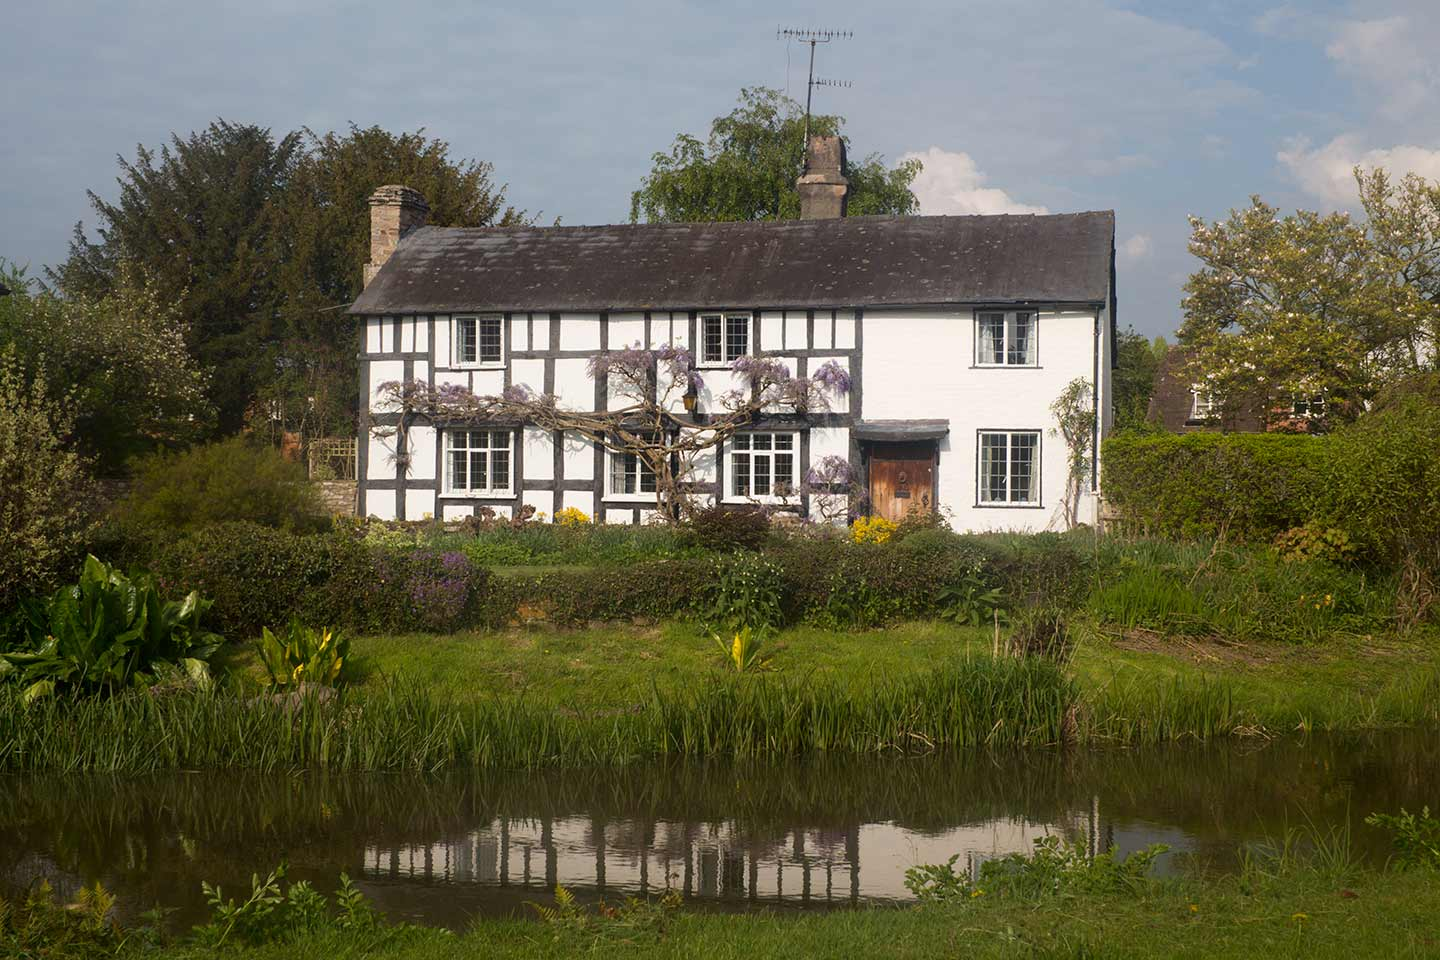 Image of a black and white house in Eardisland, Herefordshire